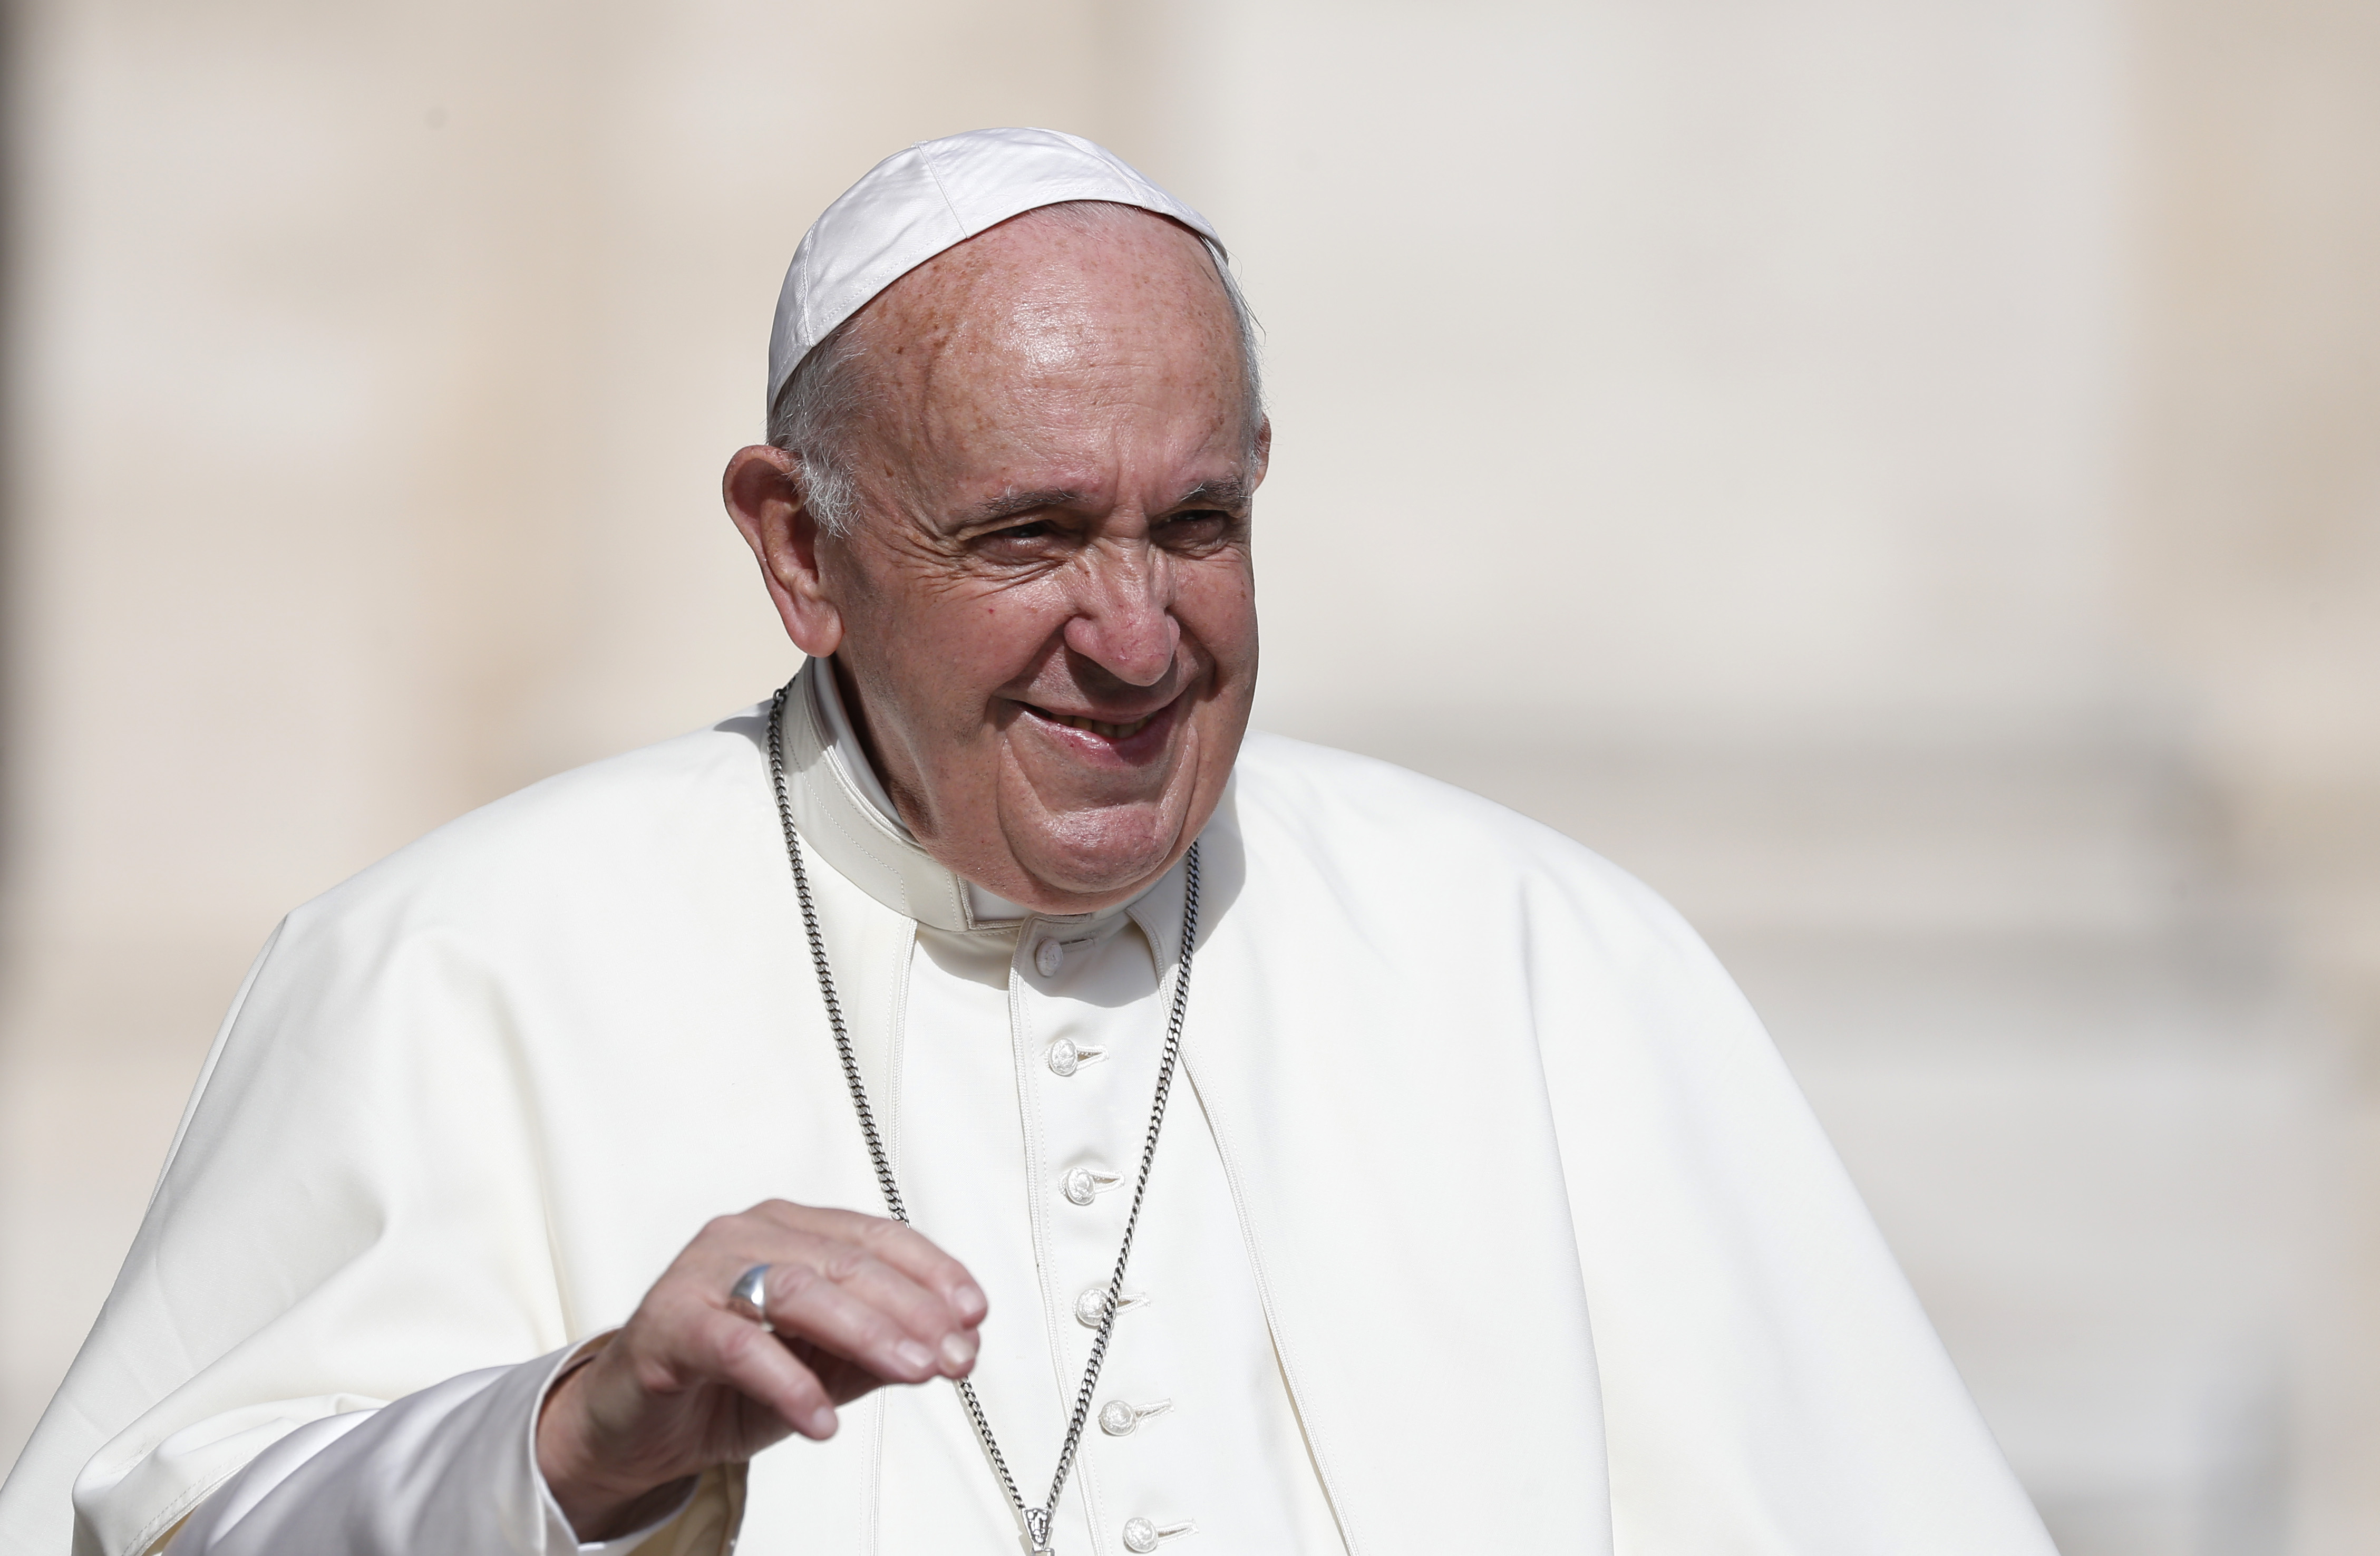 Unity is first sign of true Christian witness, pope says